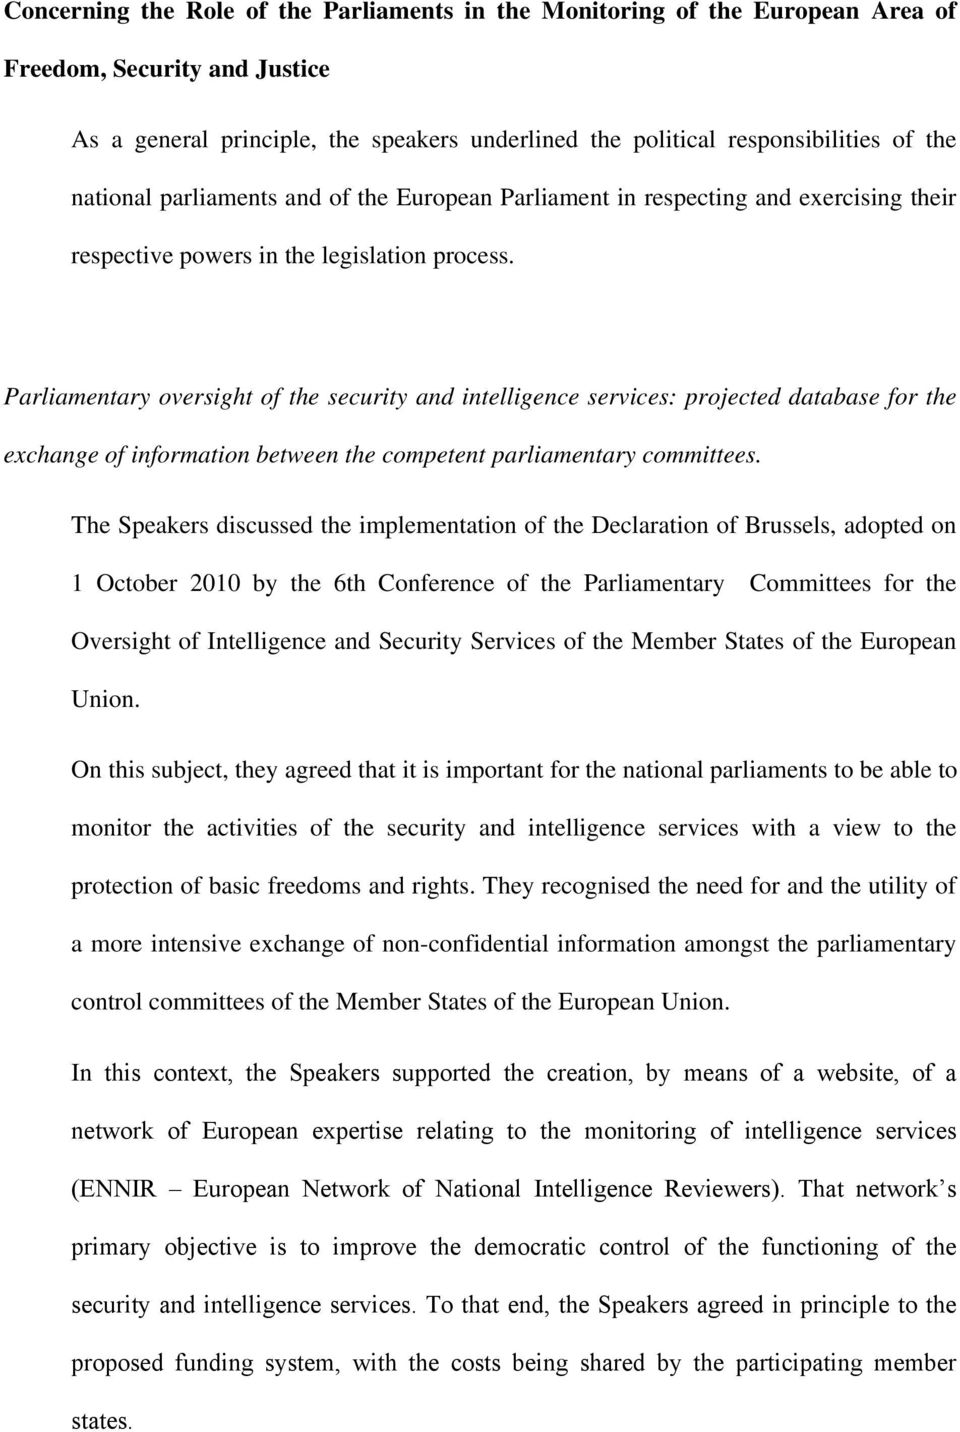 Parliamentary oversight of the security and intelligence services: projected database for the exchange of information between the competent parliamentary committees.